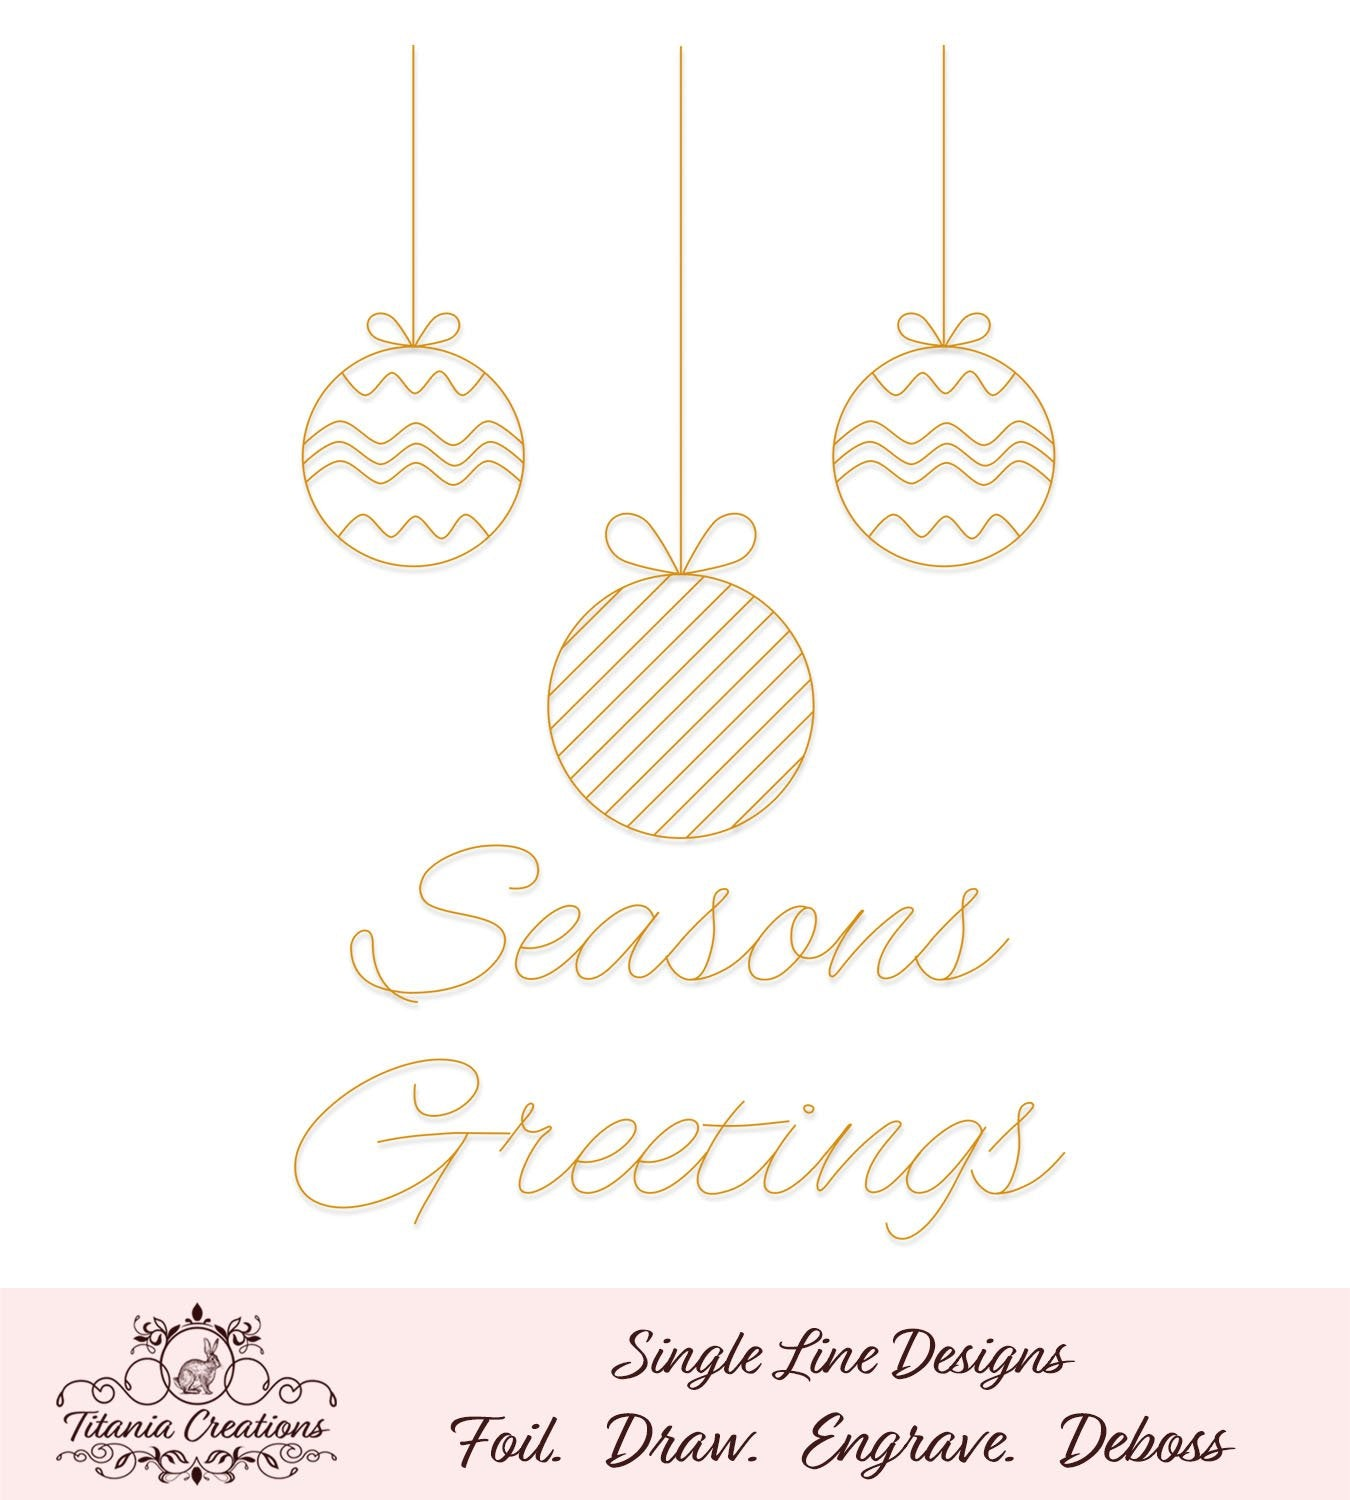 Single Line Seasons Greetings Baubles Foil Quill Svg